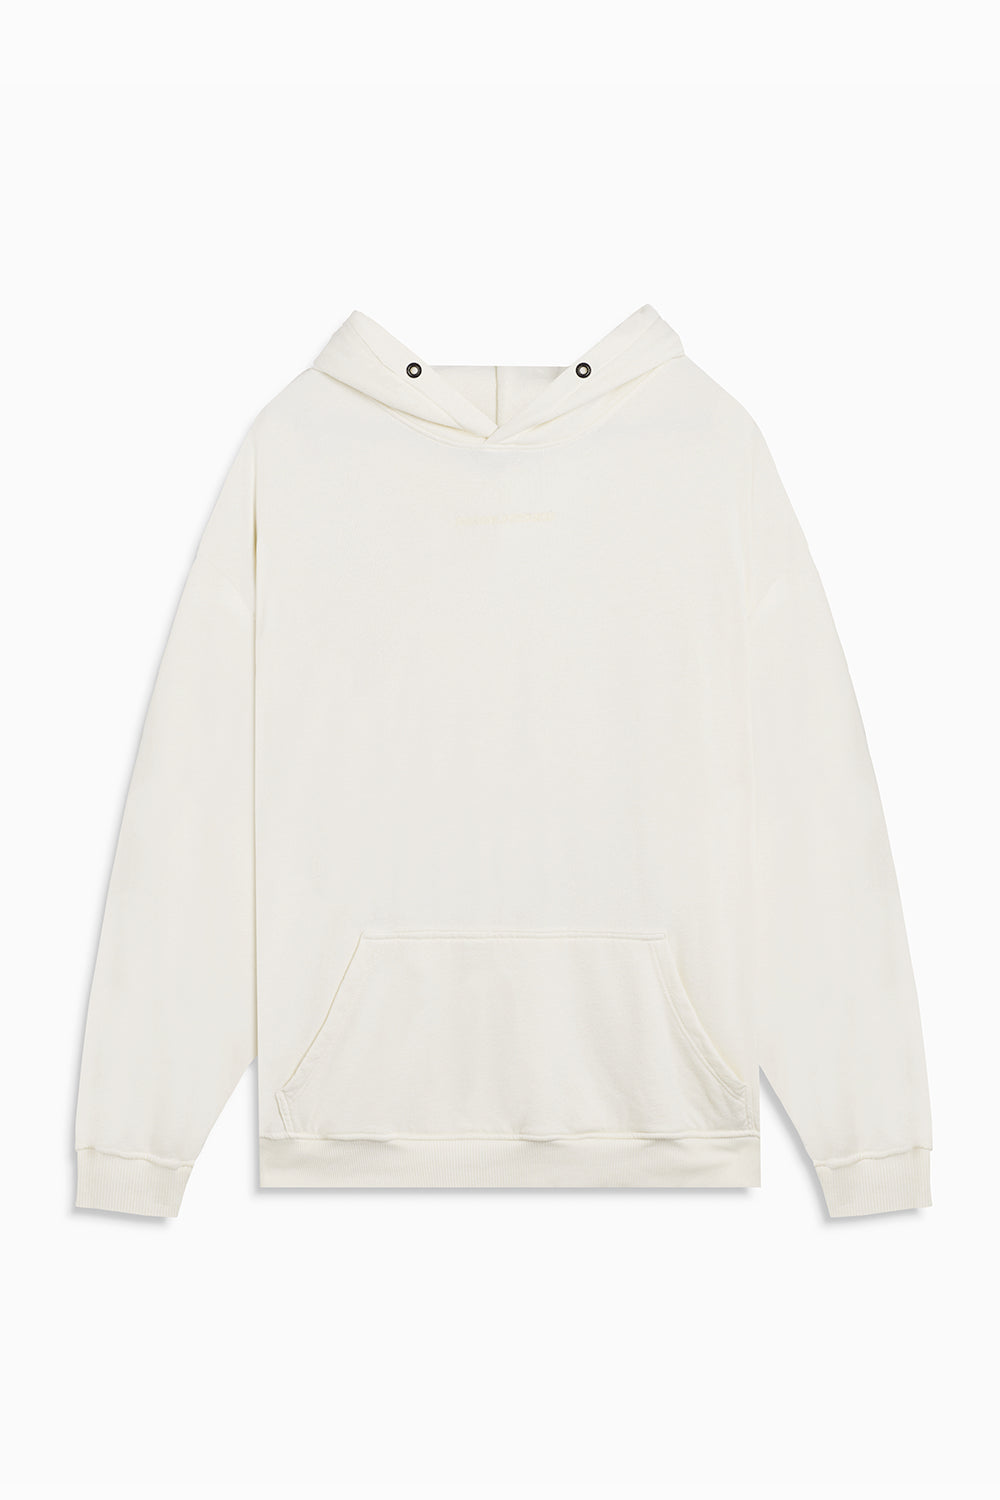 loop terry standard hoodie / natural terry